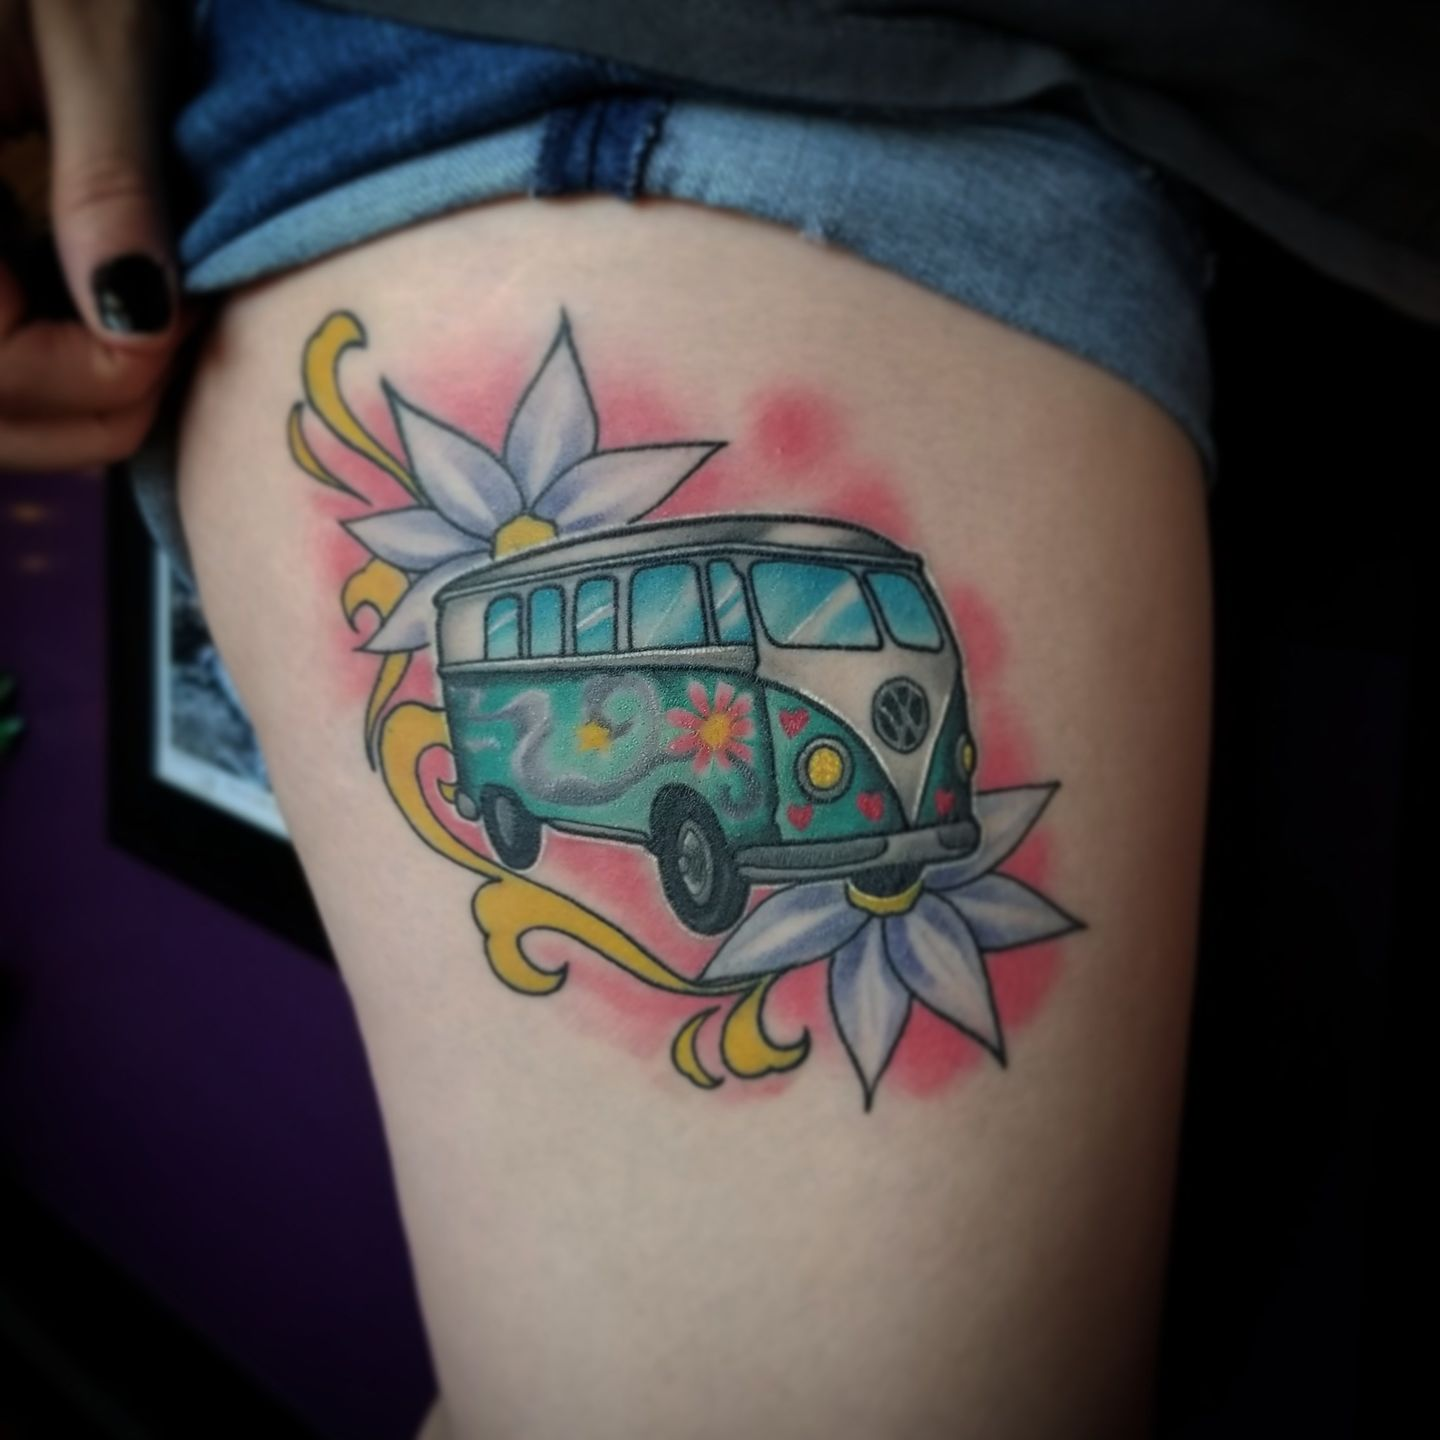 Latest Hippie Tattoos | Find Hippie Tattoos